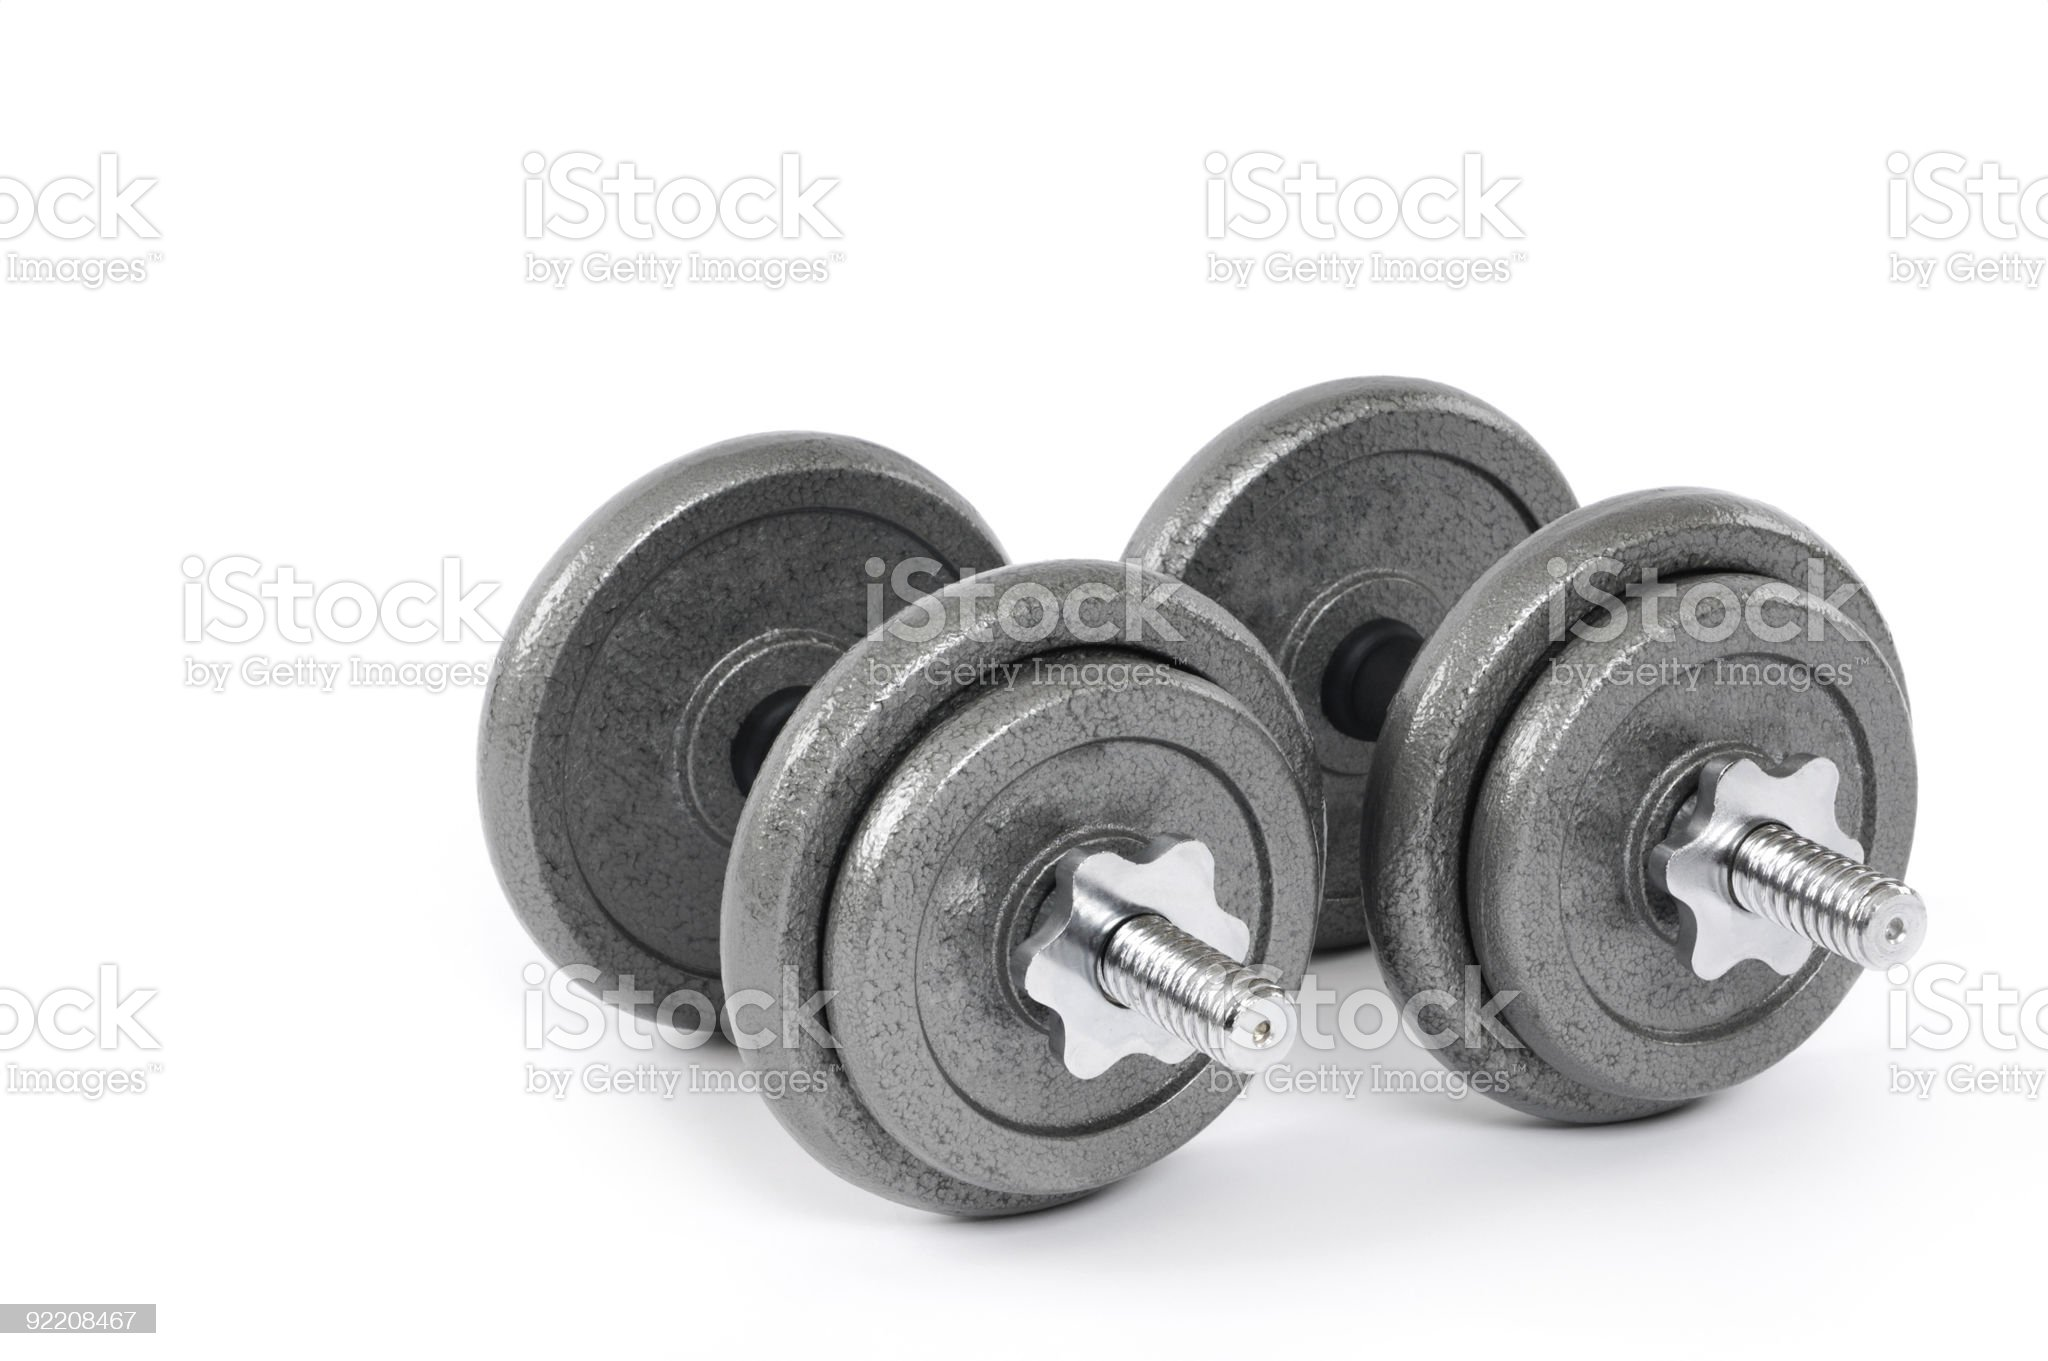 Dumbbells royalty-free stock photo